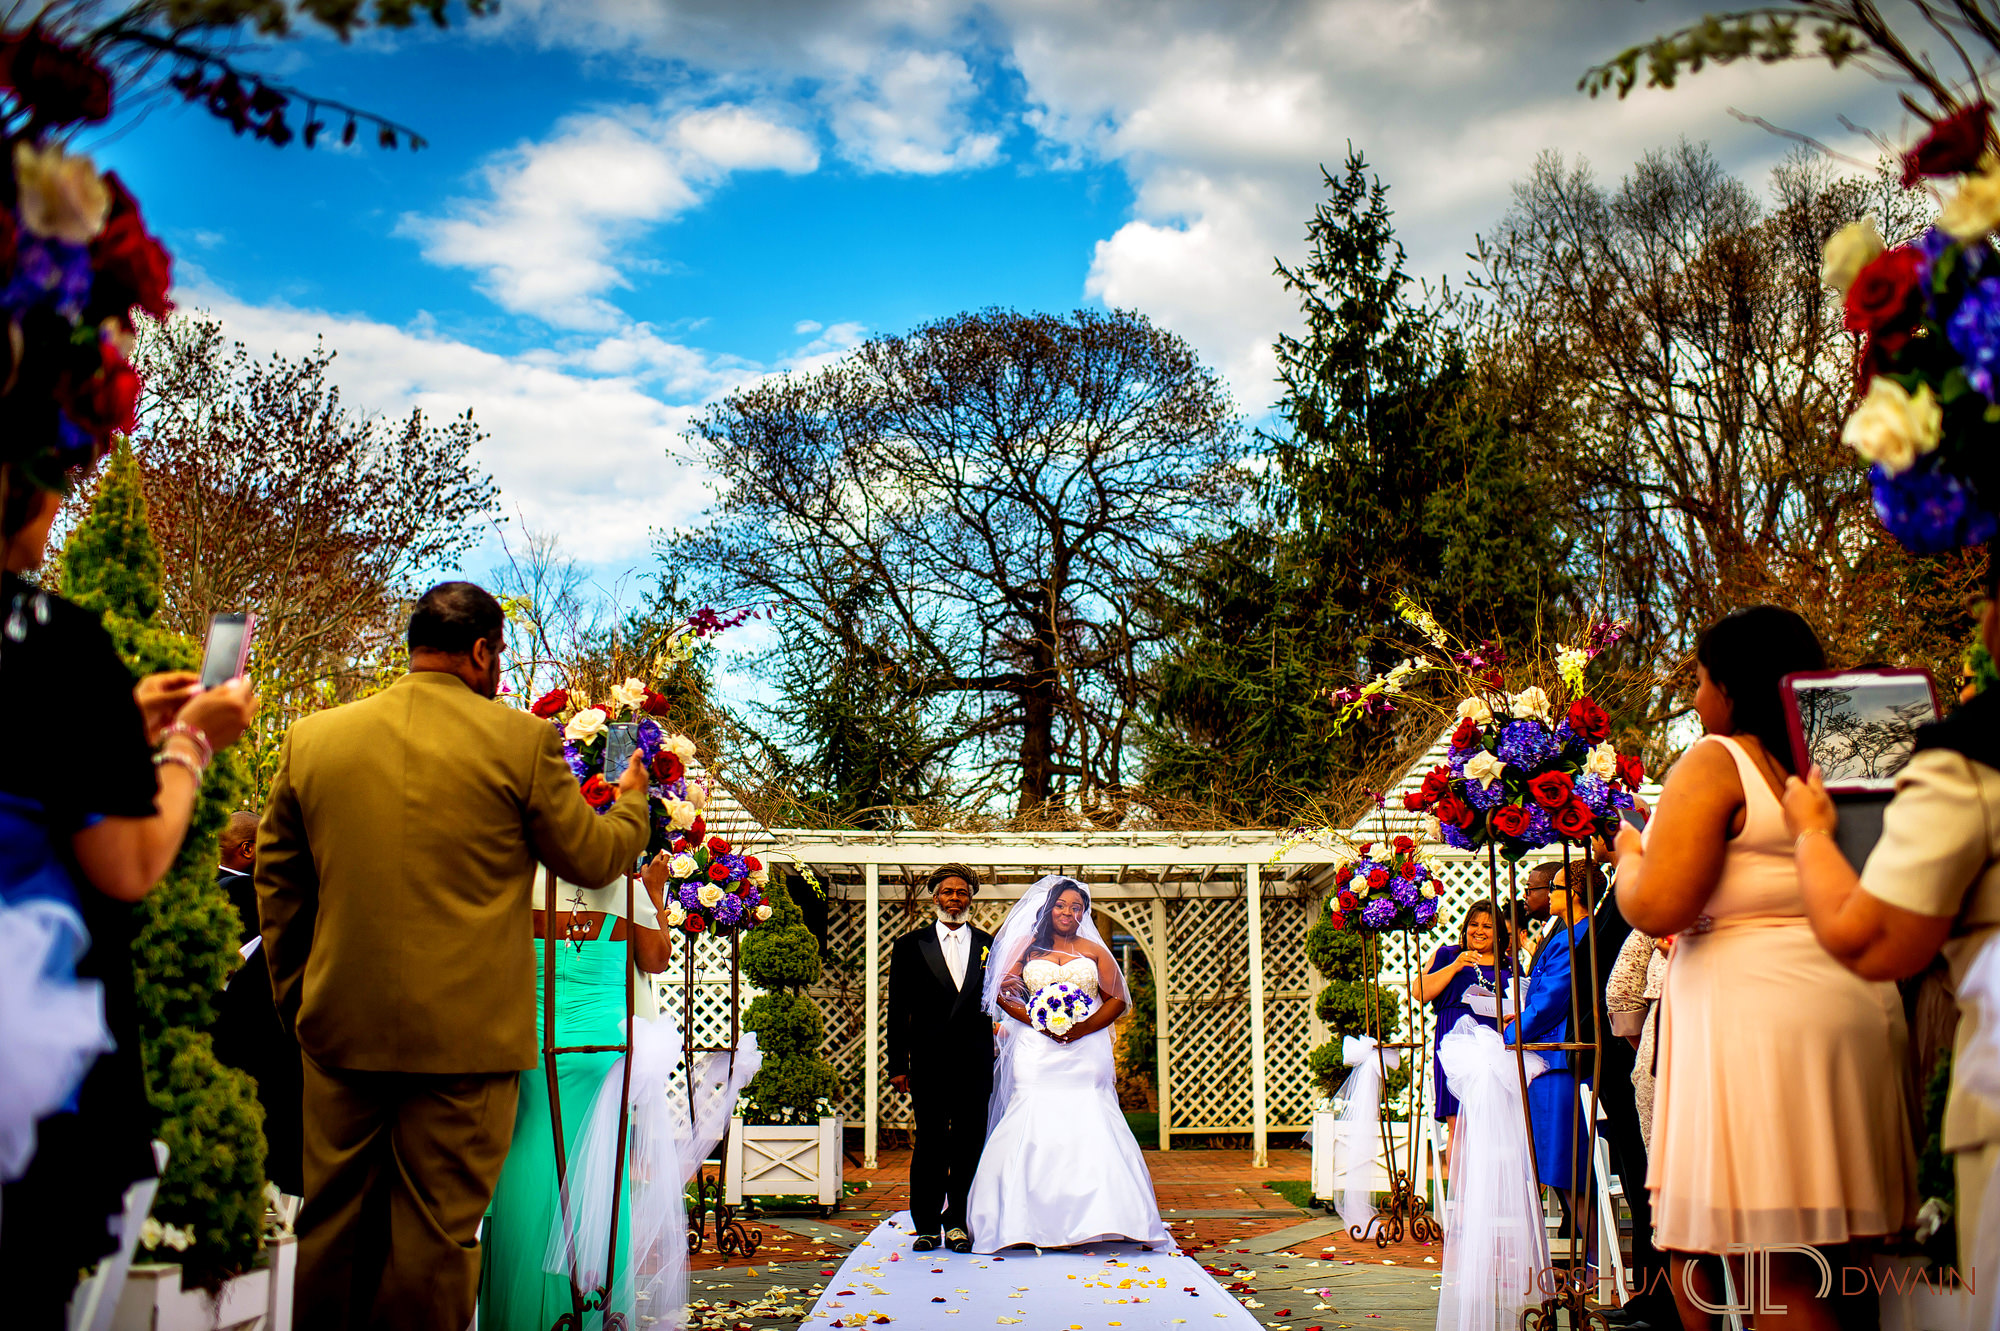 Tanya & Jimmy's Wedding at Crest Hollow Country Club